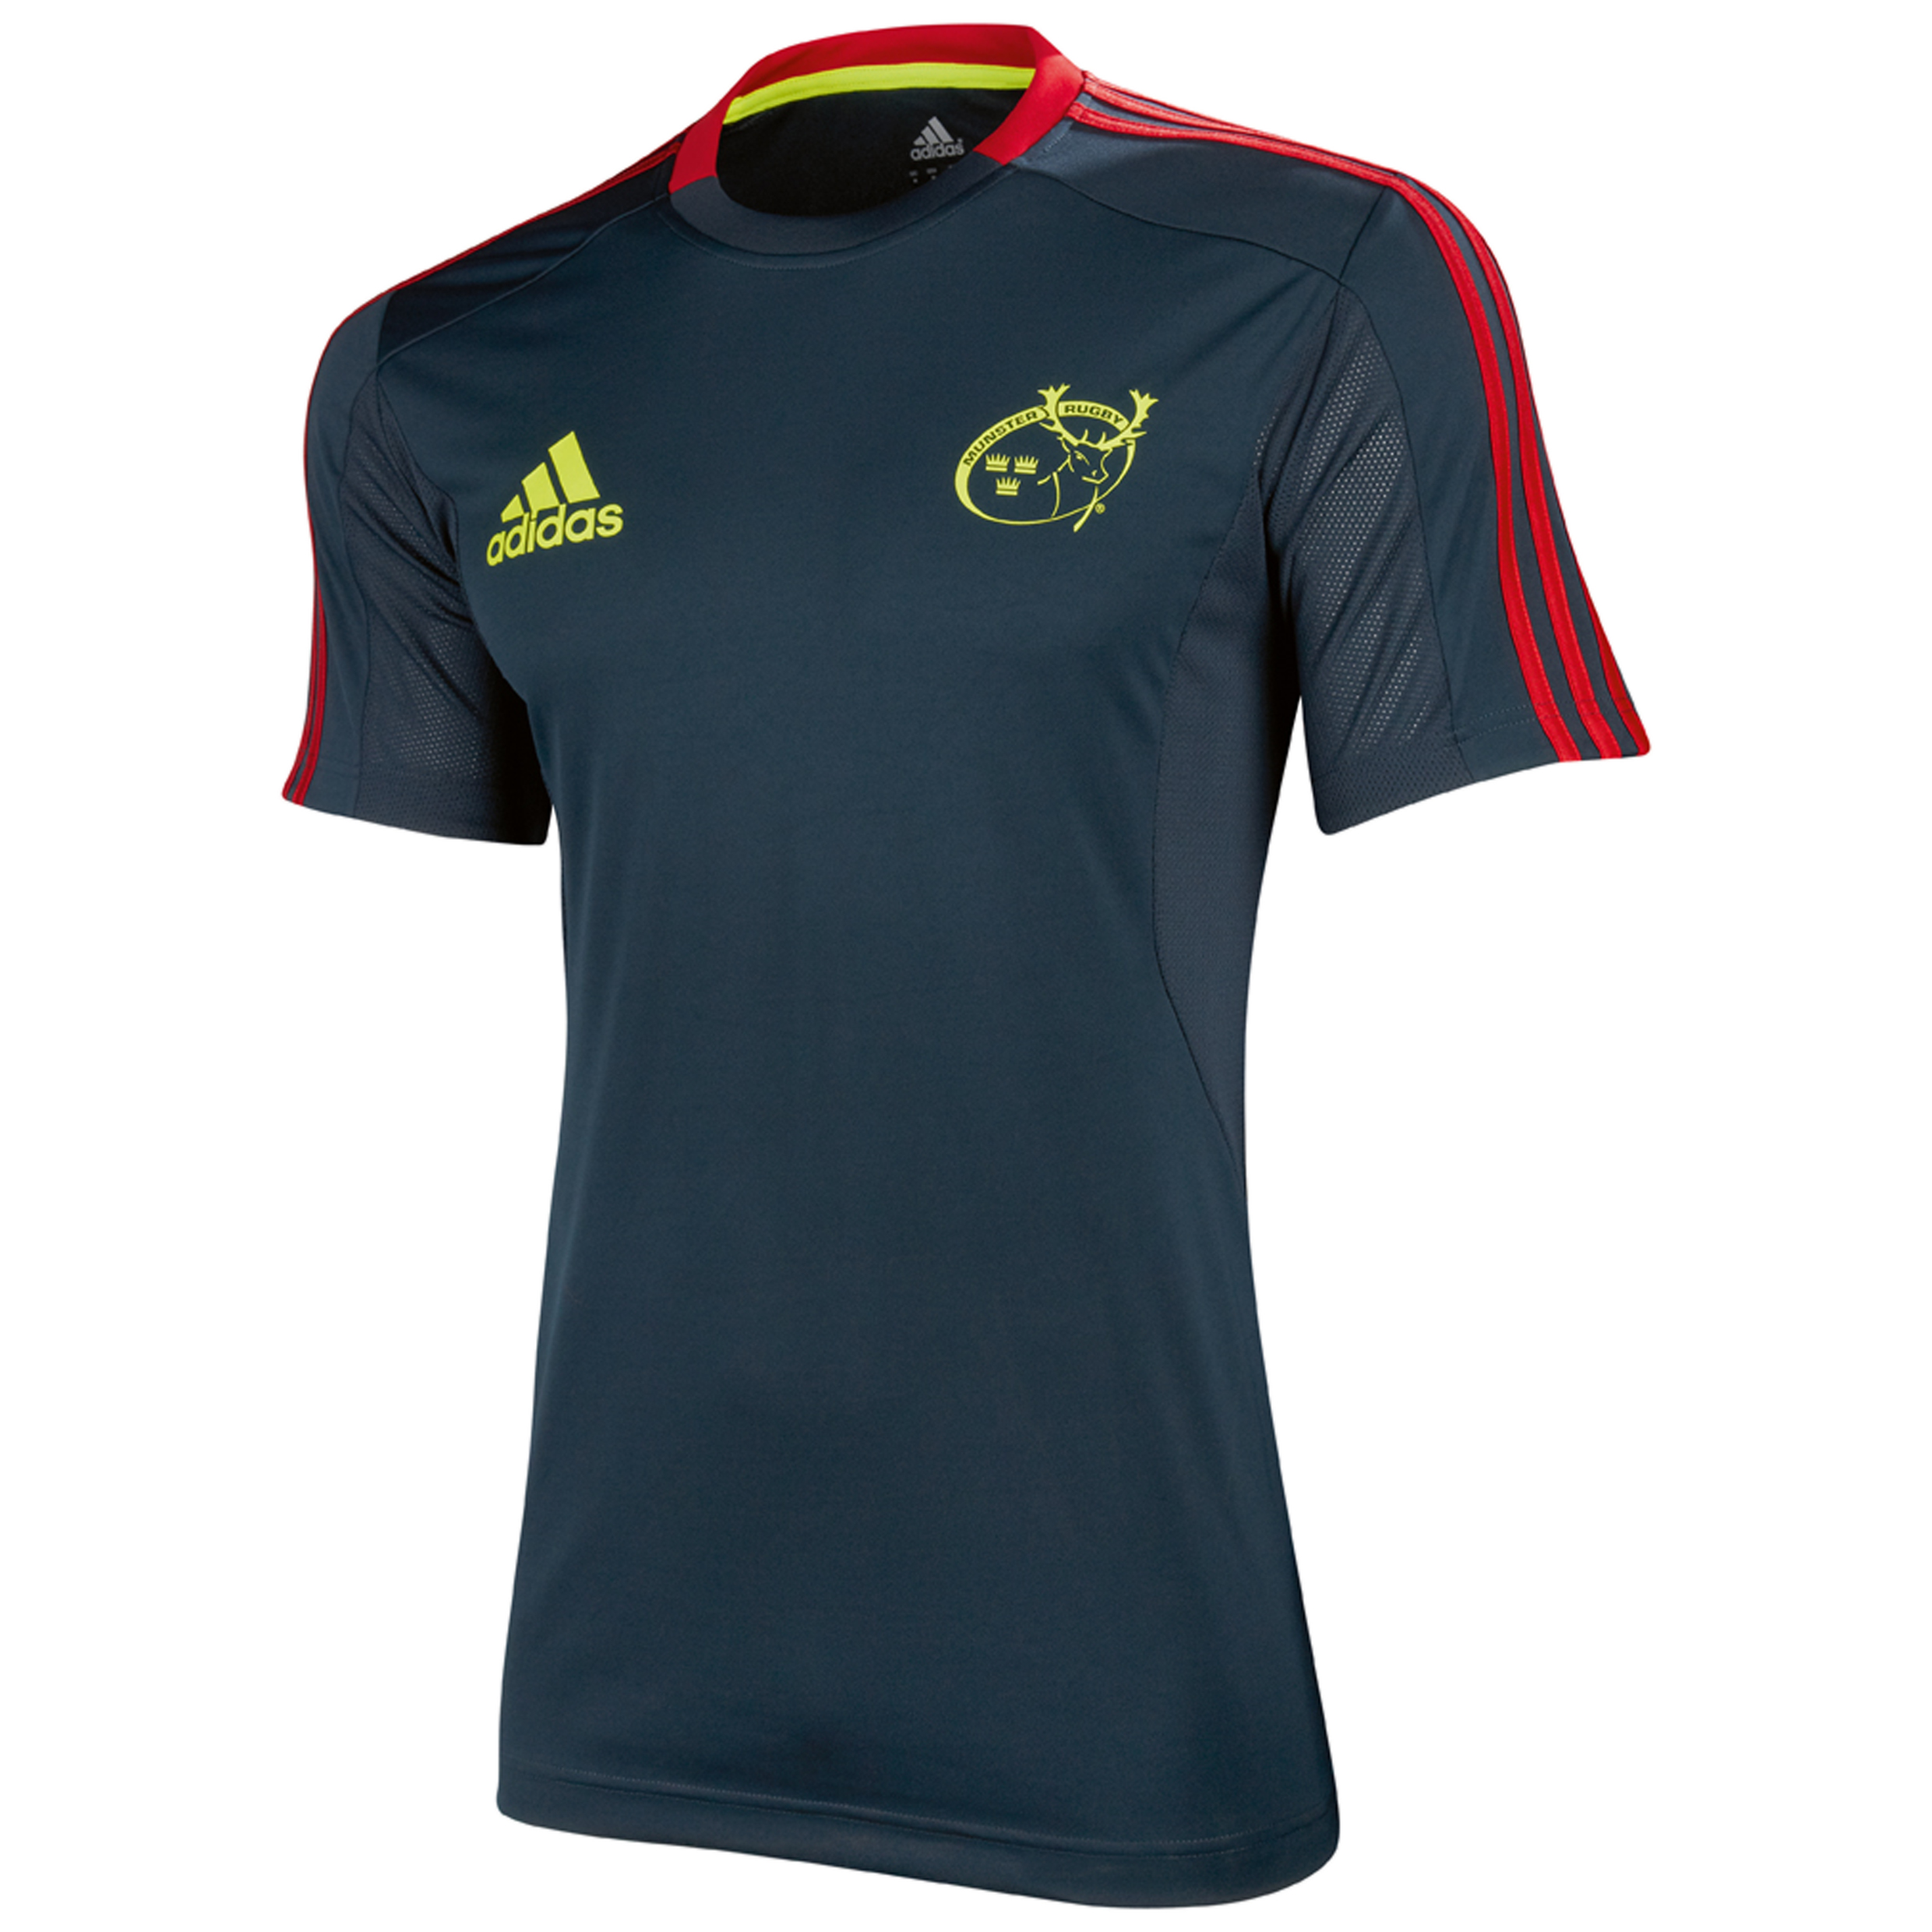 Munster Performance T-Shirt - Tech Onix/Collegiate Red